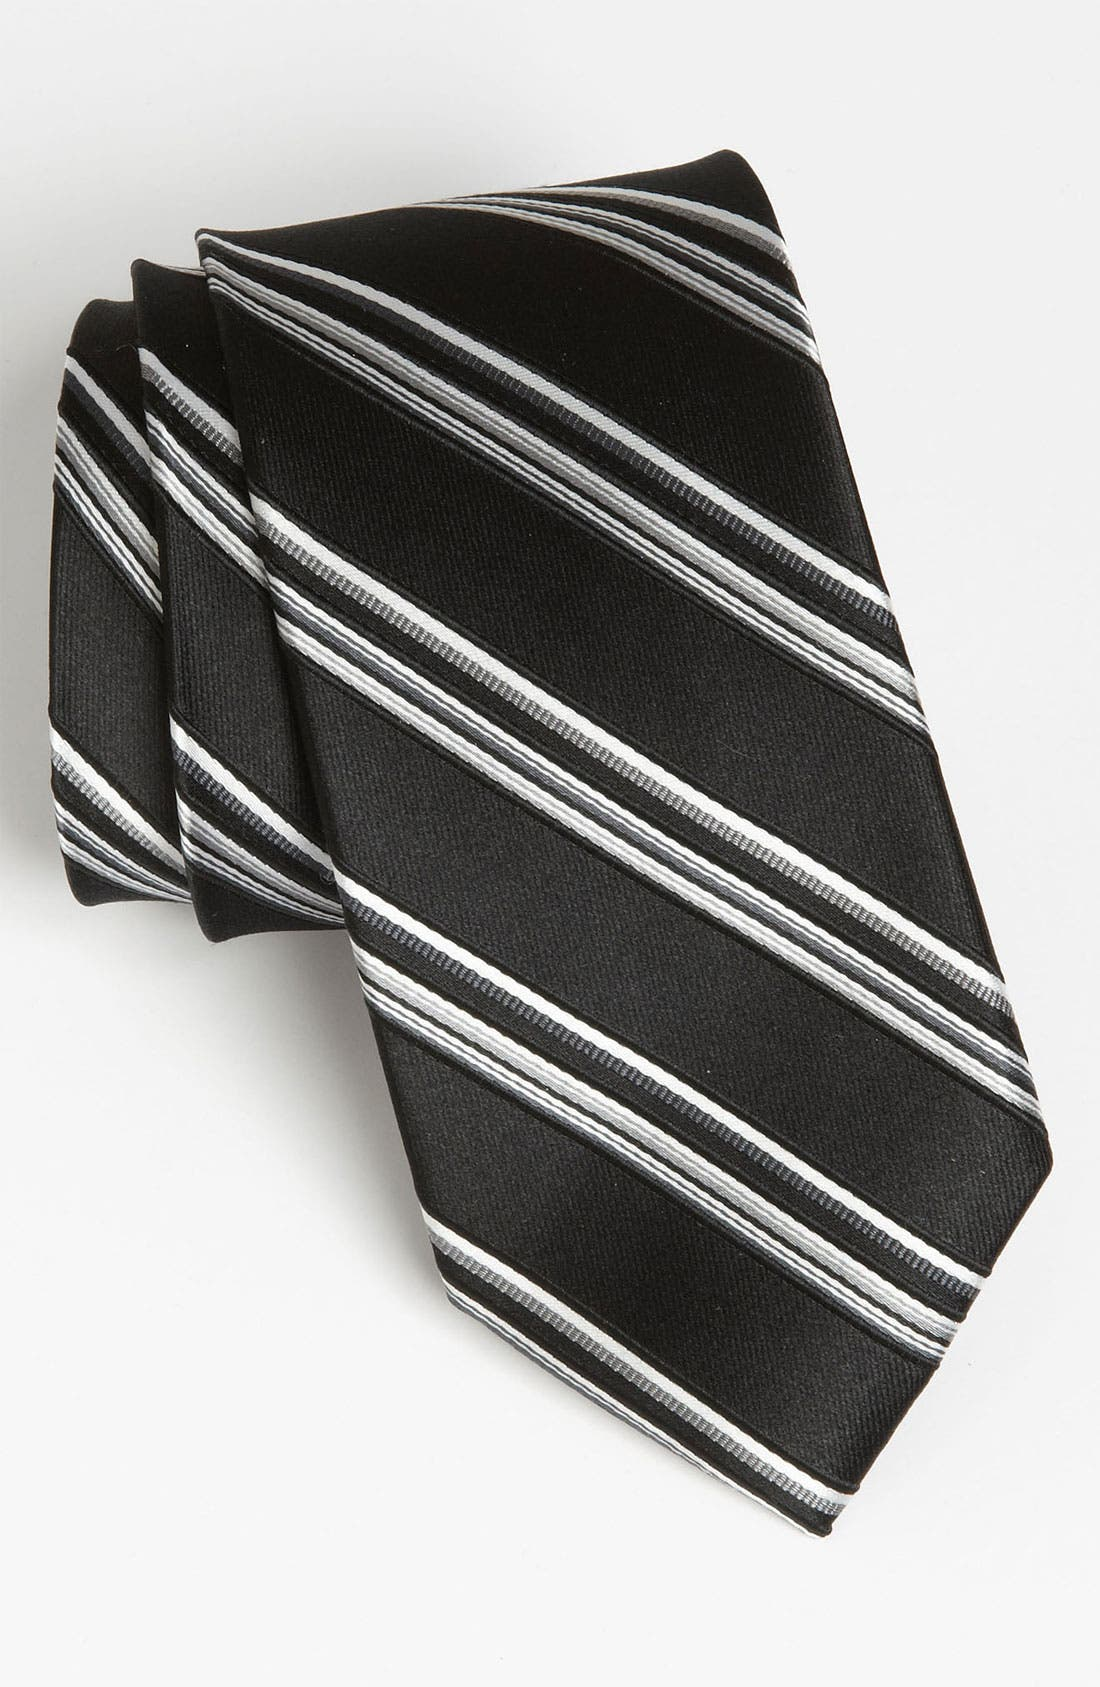 Alternate Image 1 Selected - English Laundry Woven Silk Tie